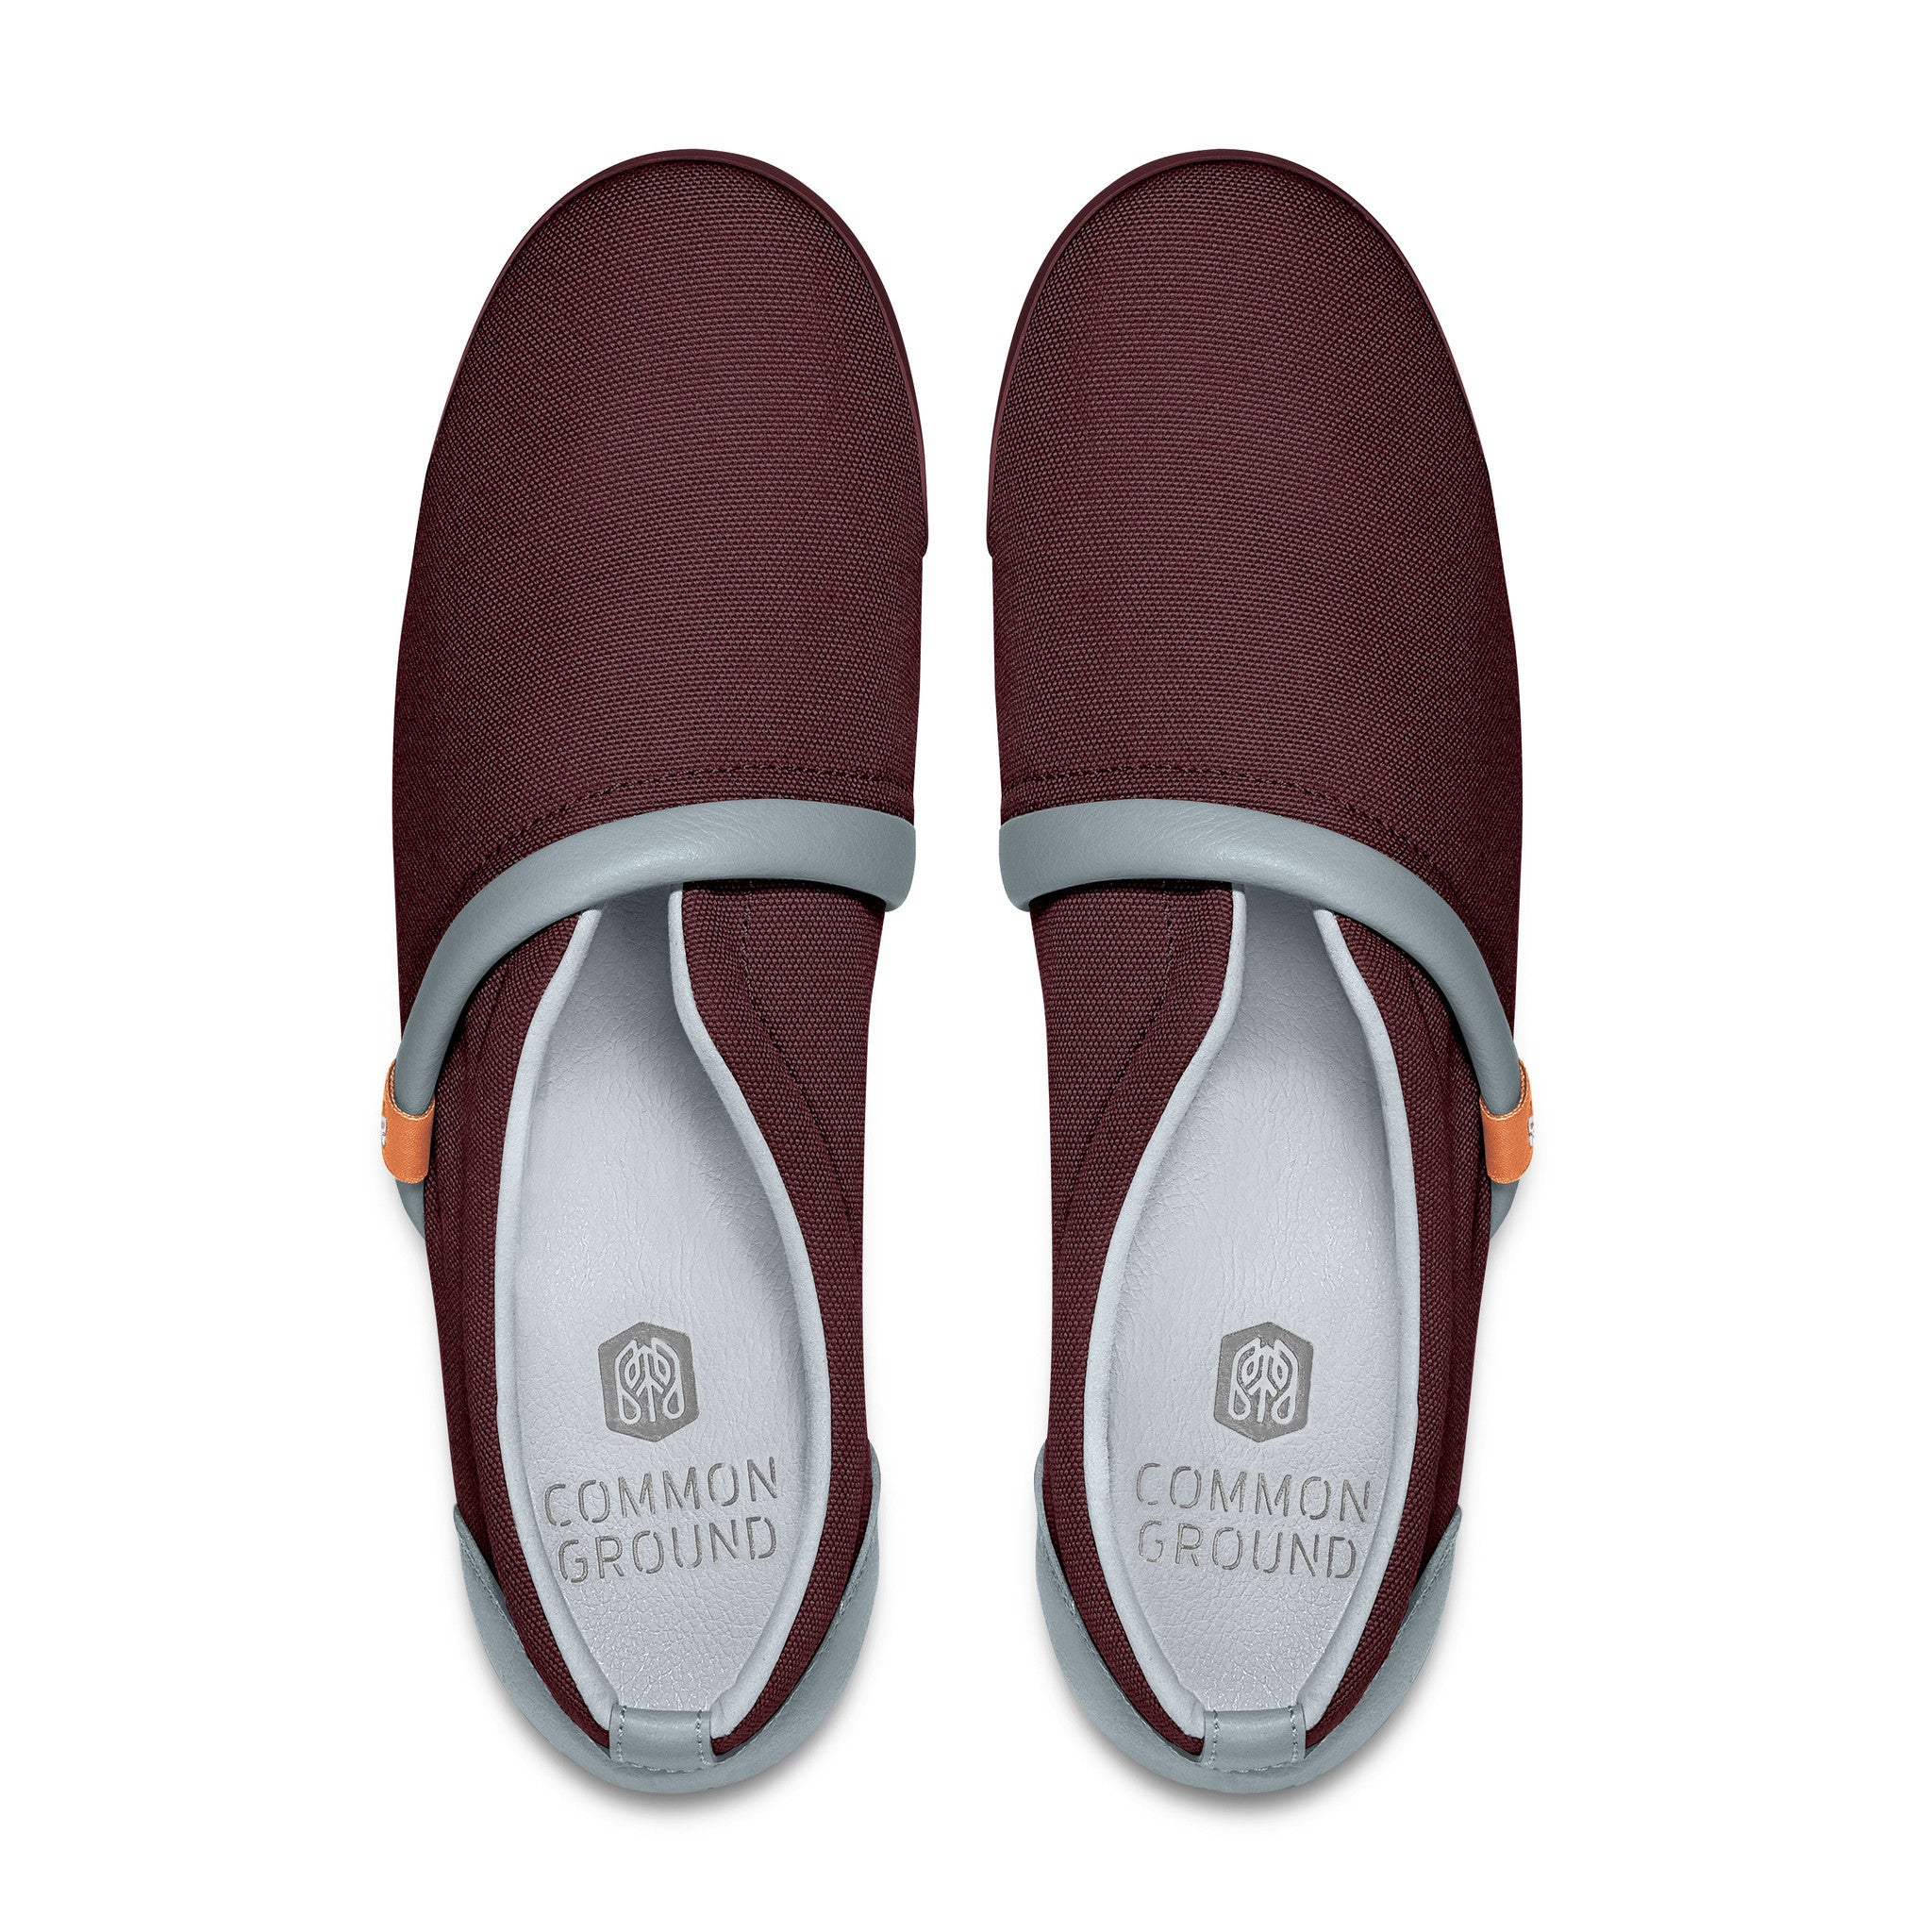 Cabernet - Common Ground Footwear Shoes Top View